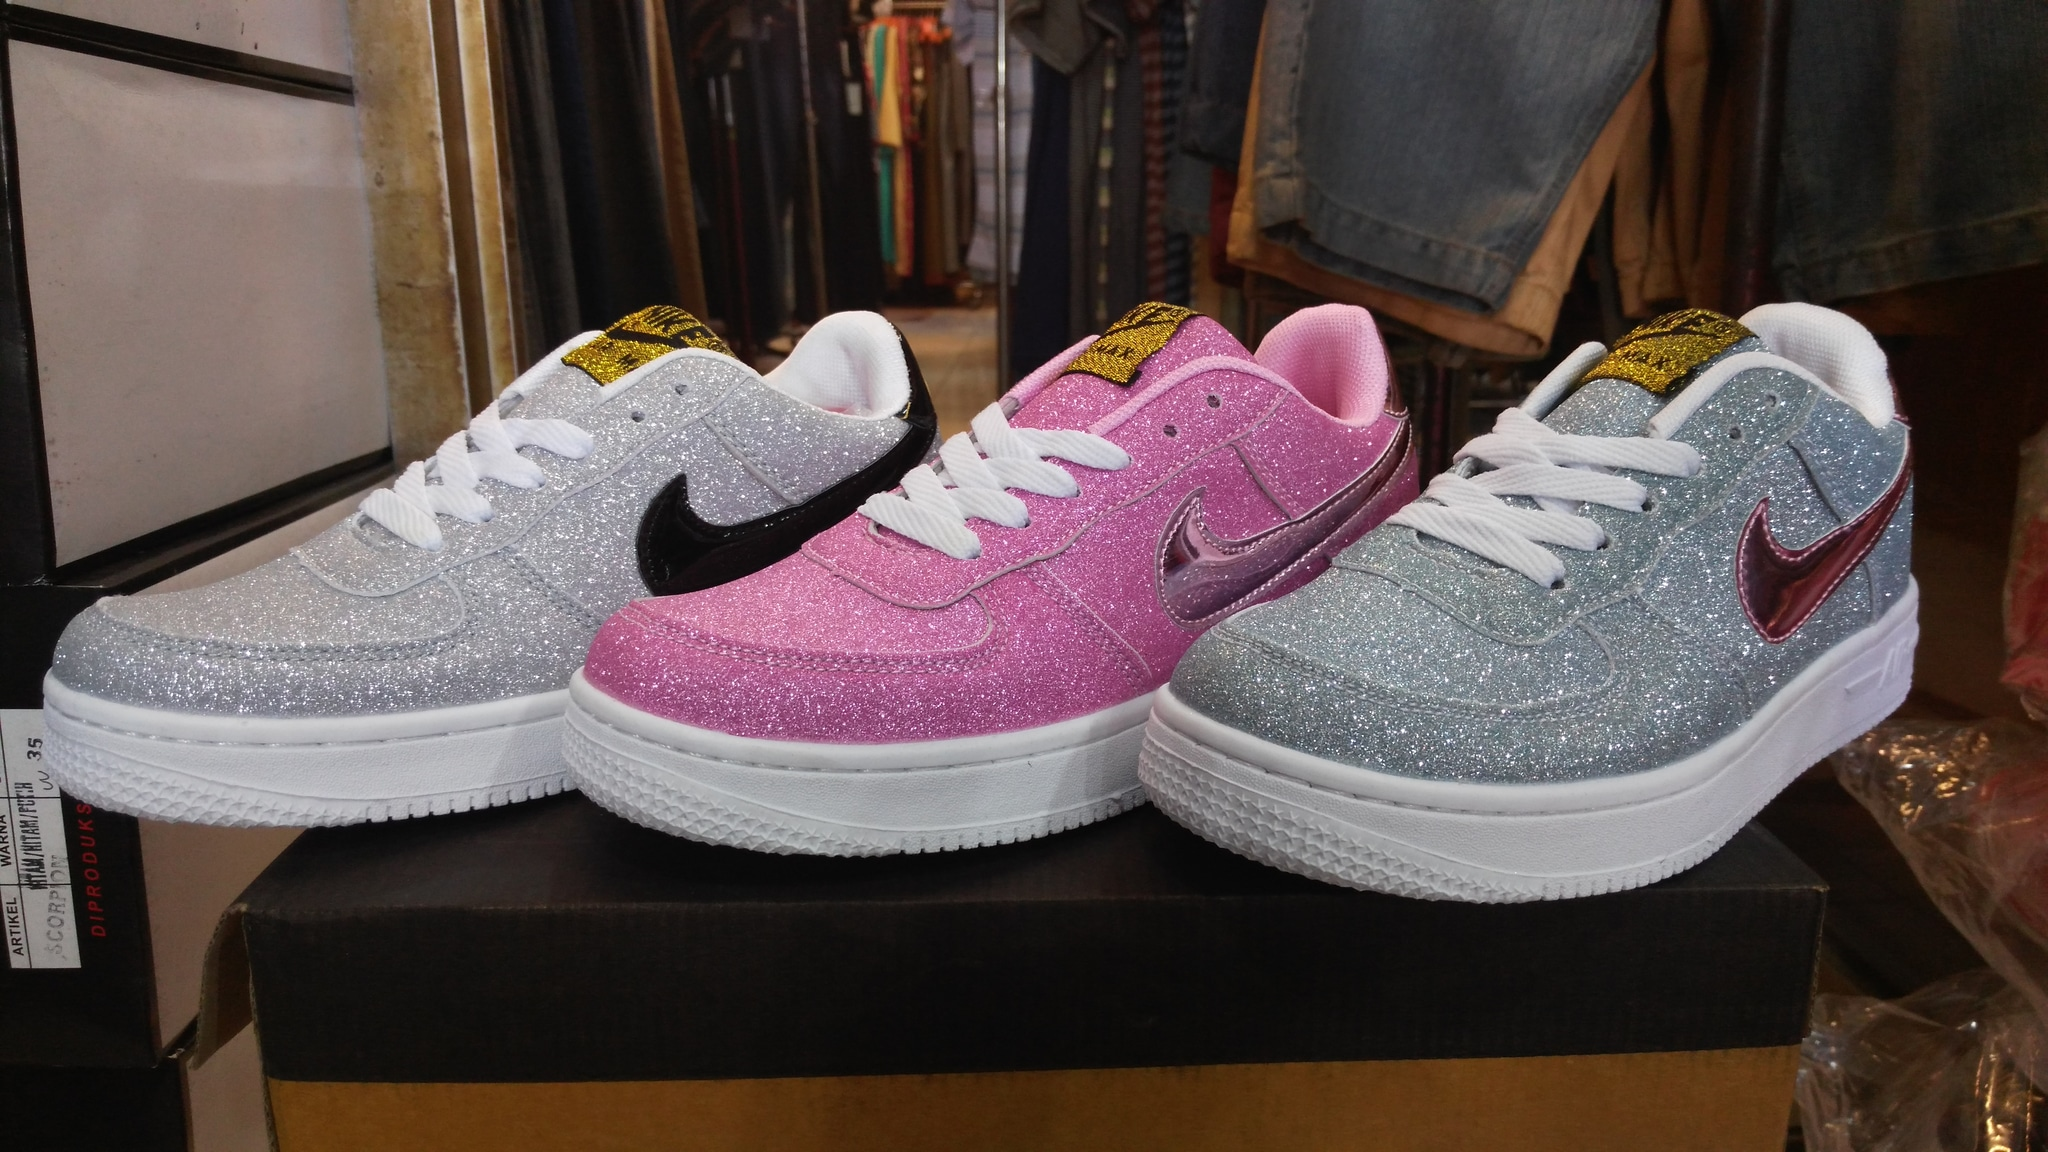 Nike Air Force 1 Supreme x Livestrong x Undefeated Sole Redemption